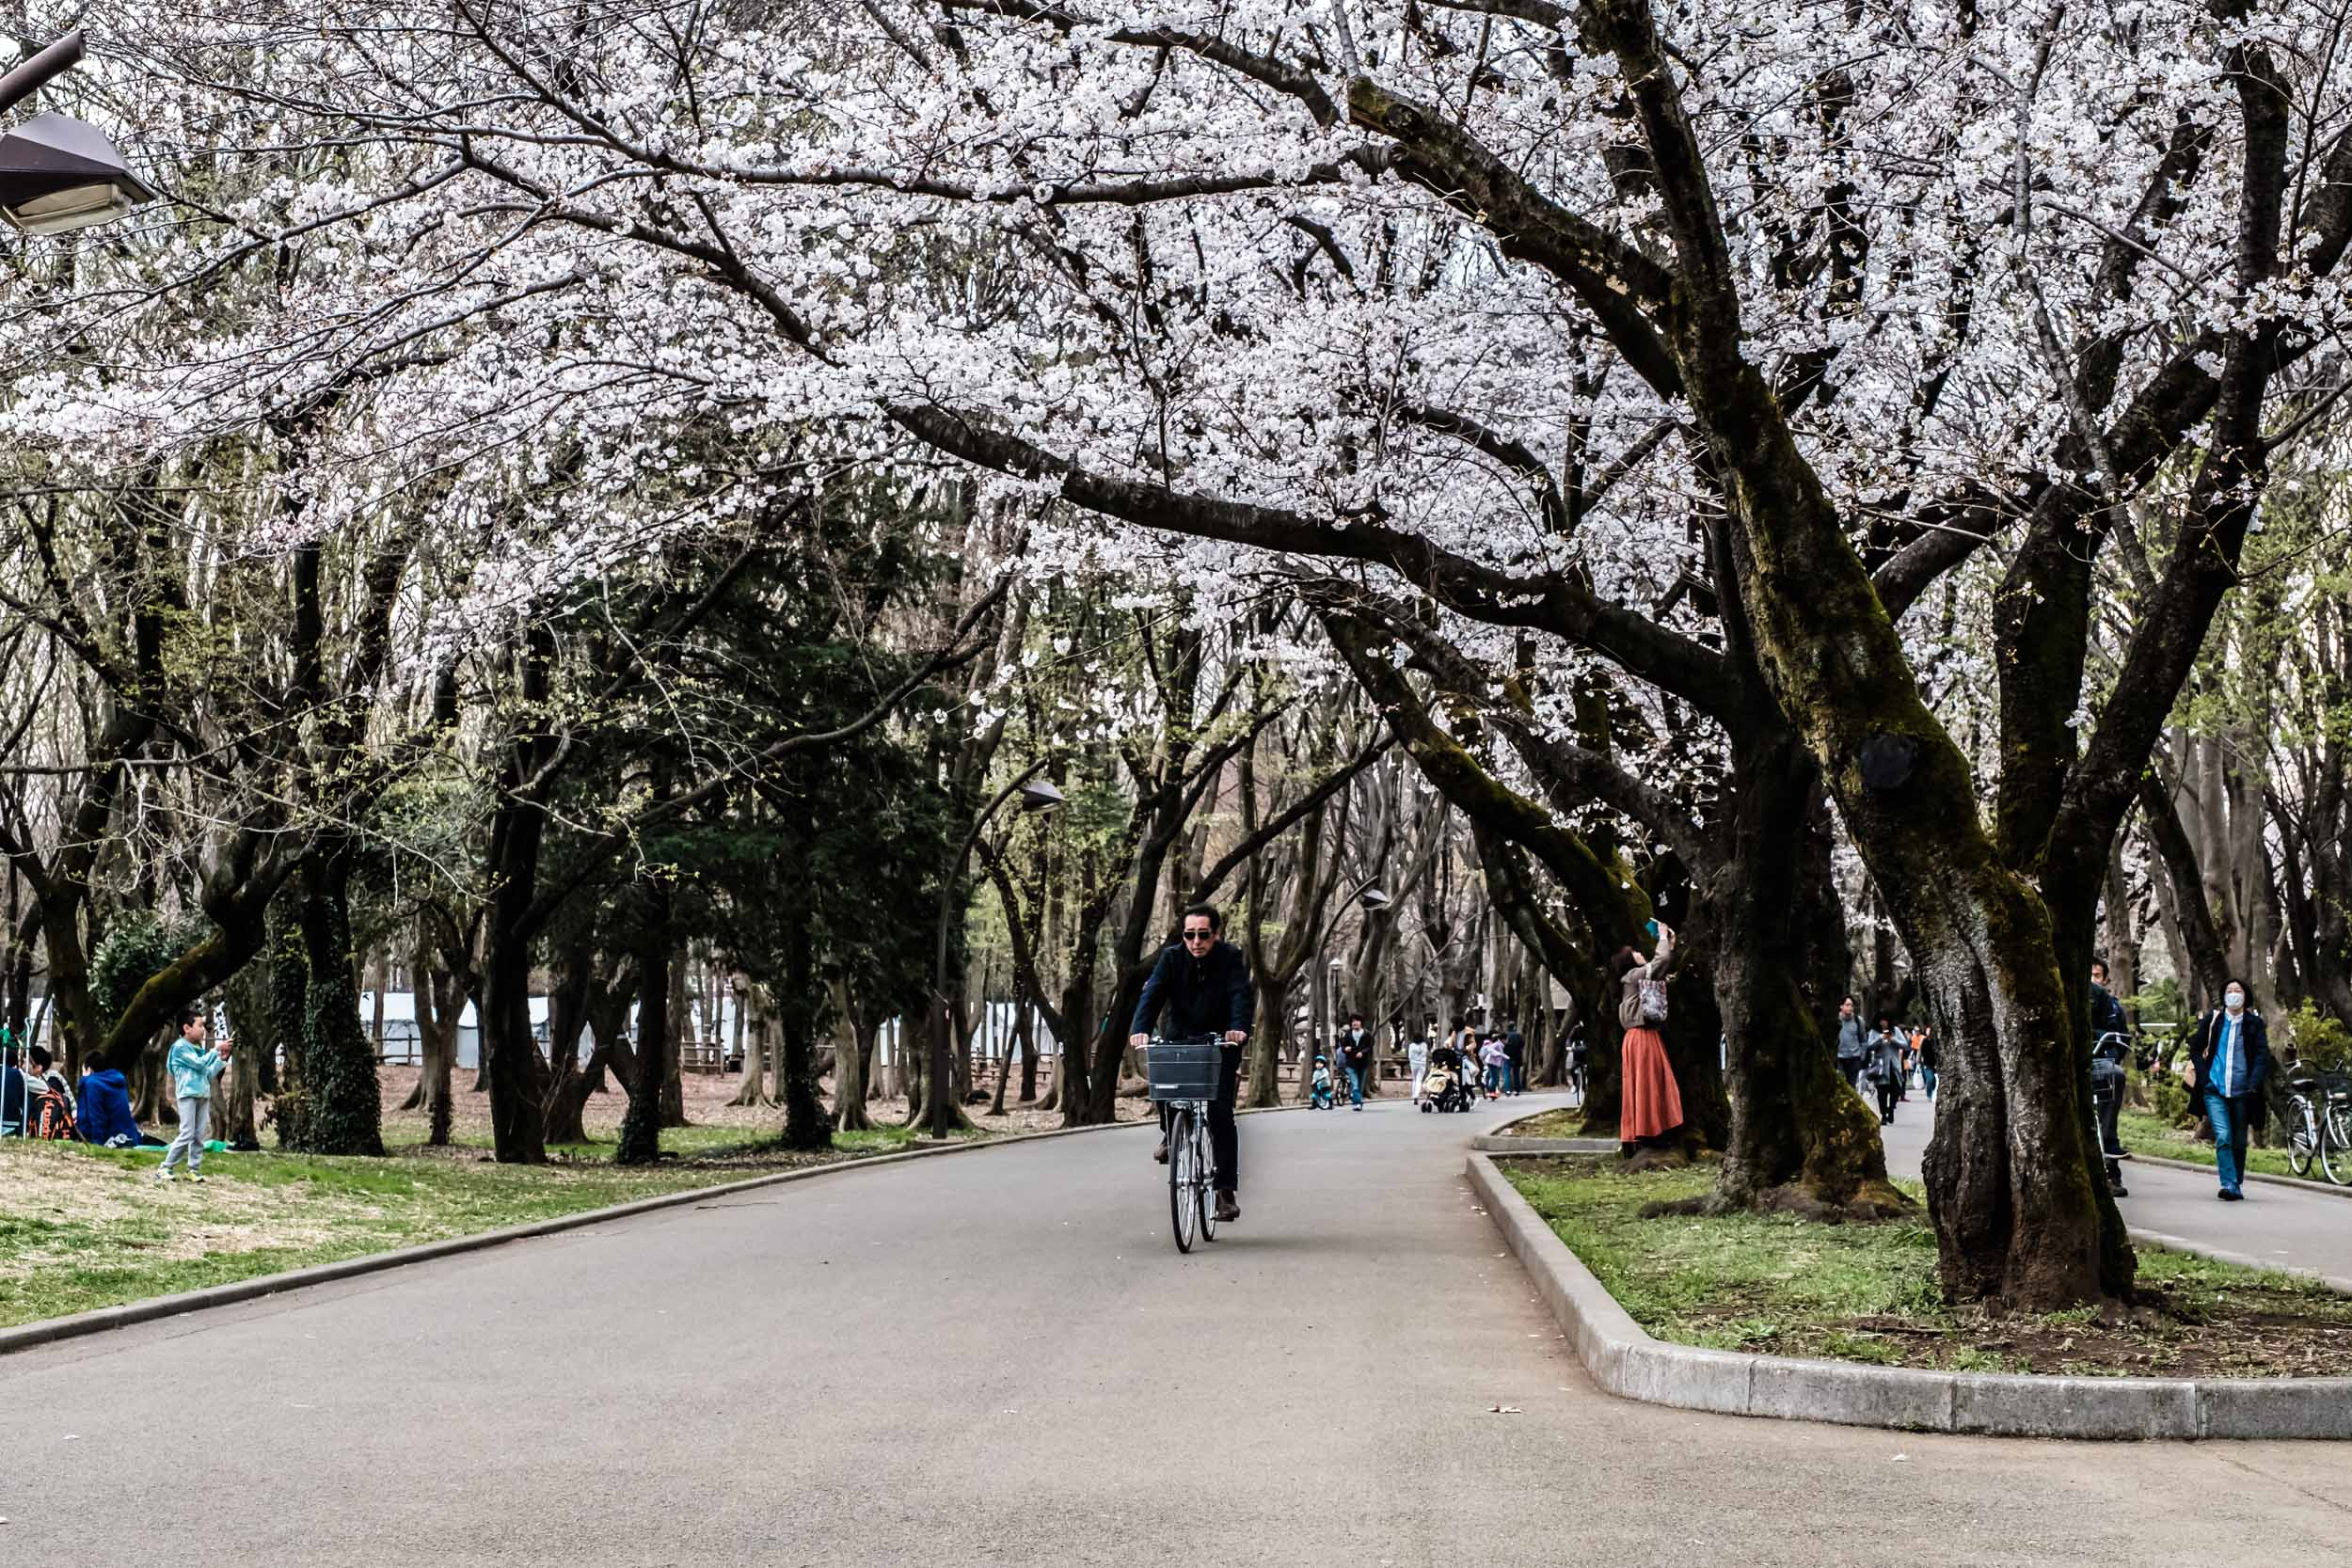 There are always lots of bicycles in Hikarigaoka park